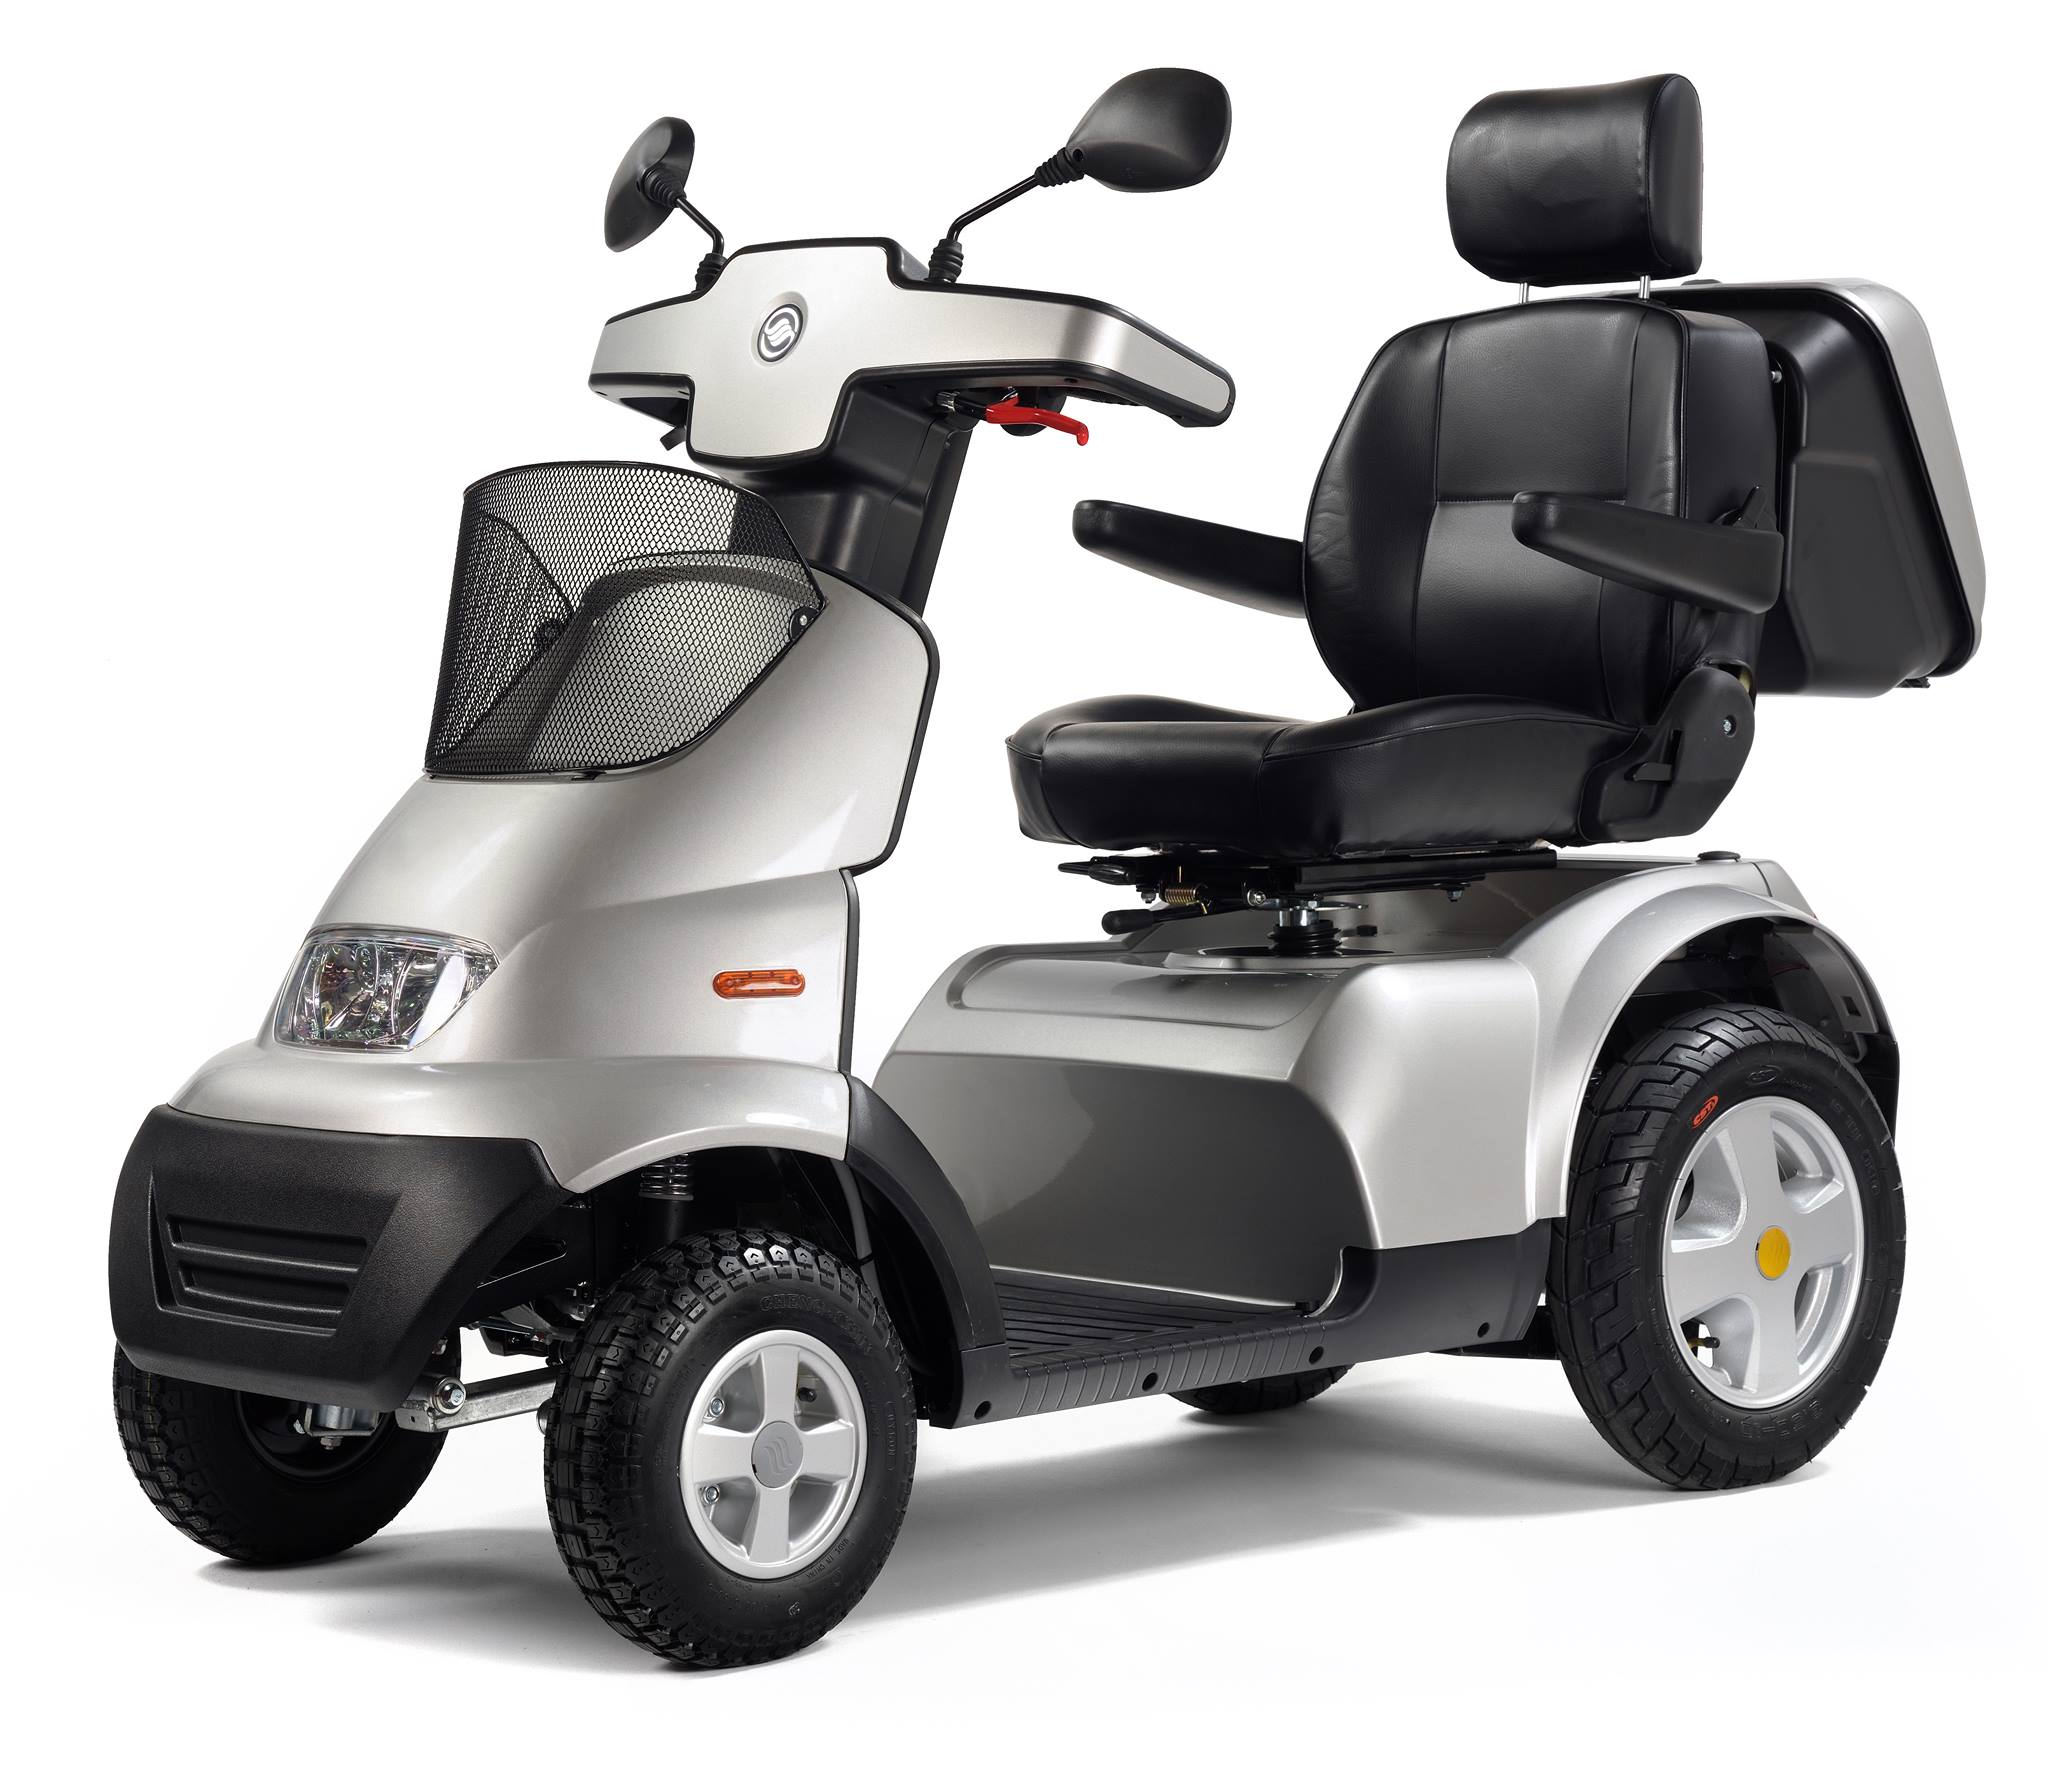 Afikim Breeze S4 Mobility Scooter